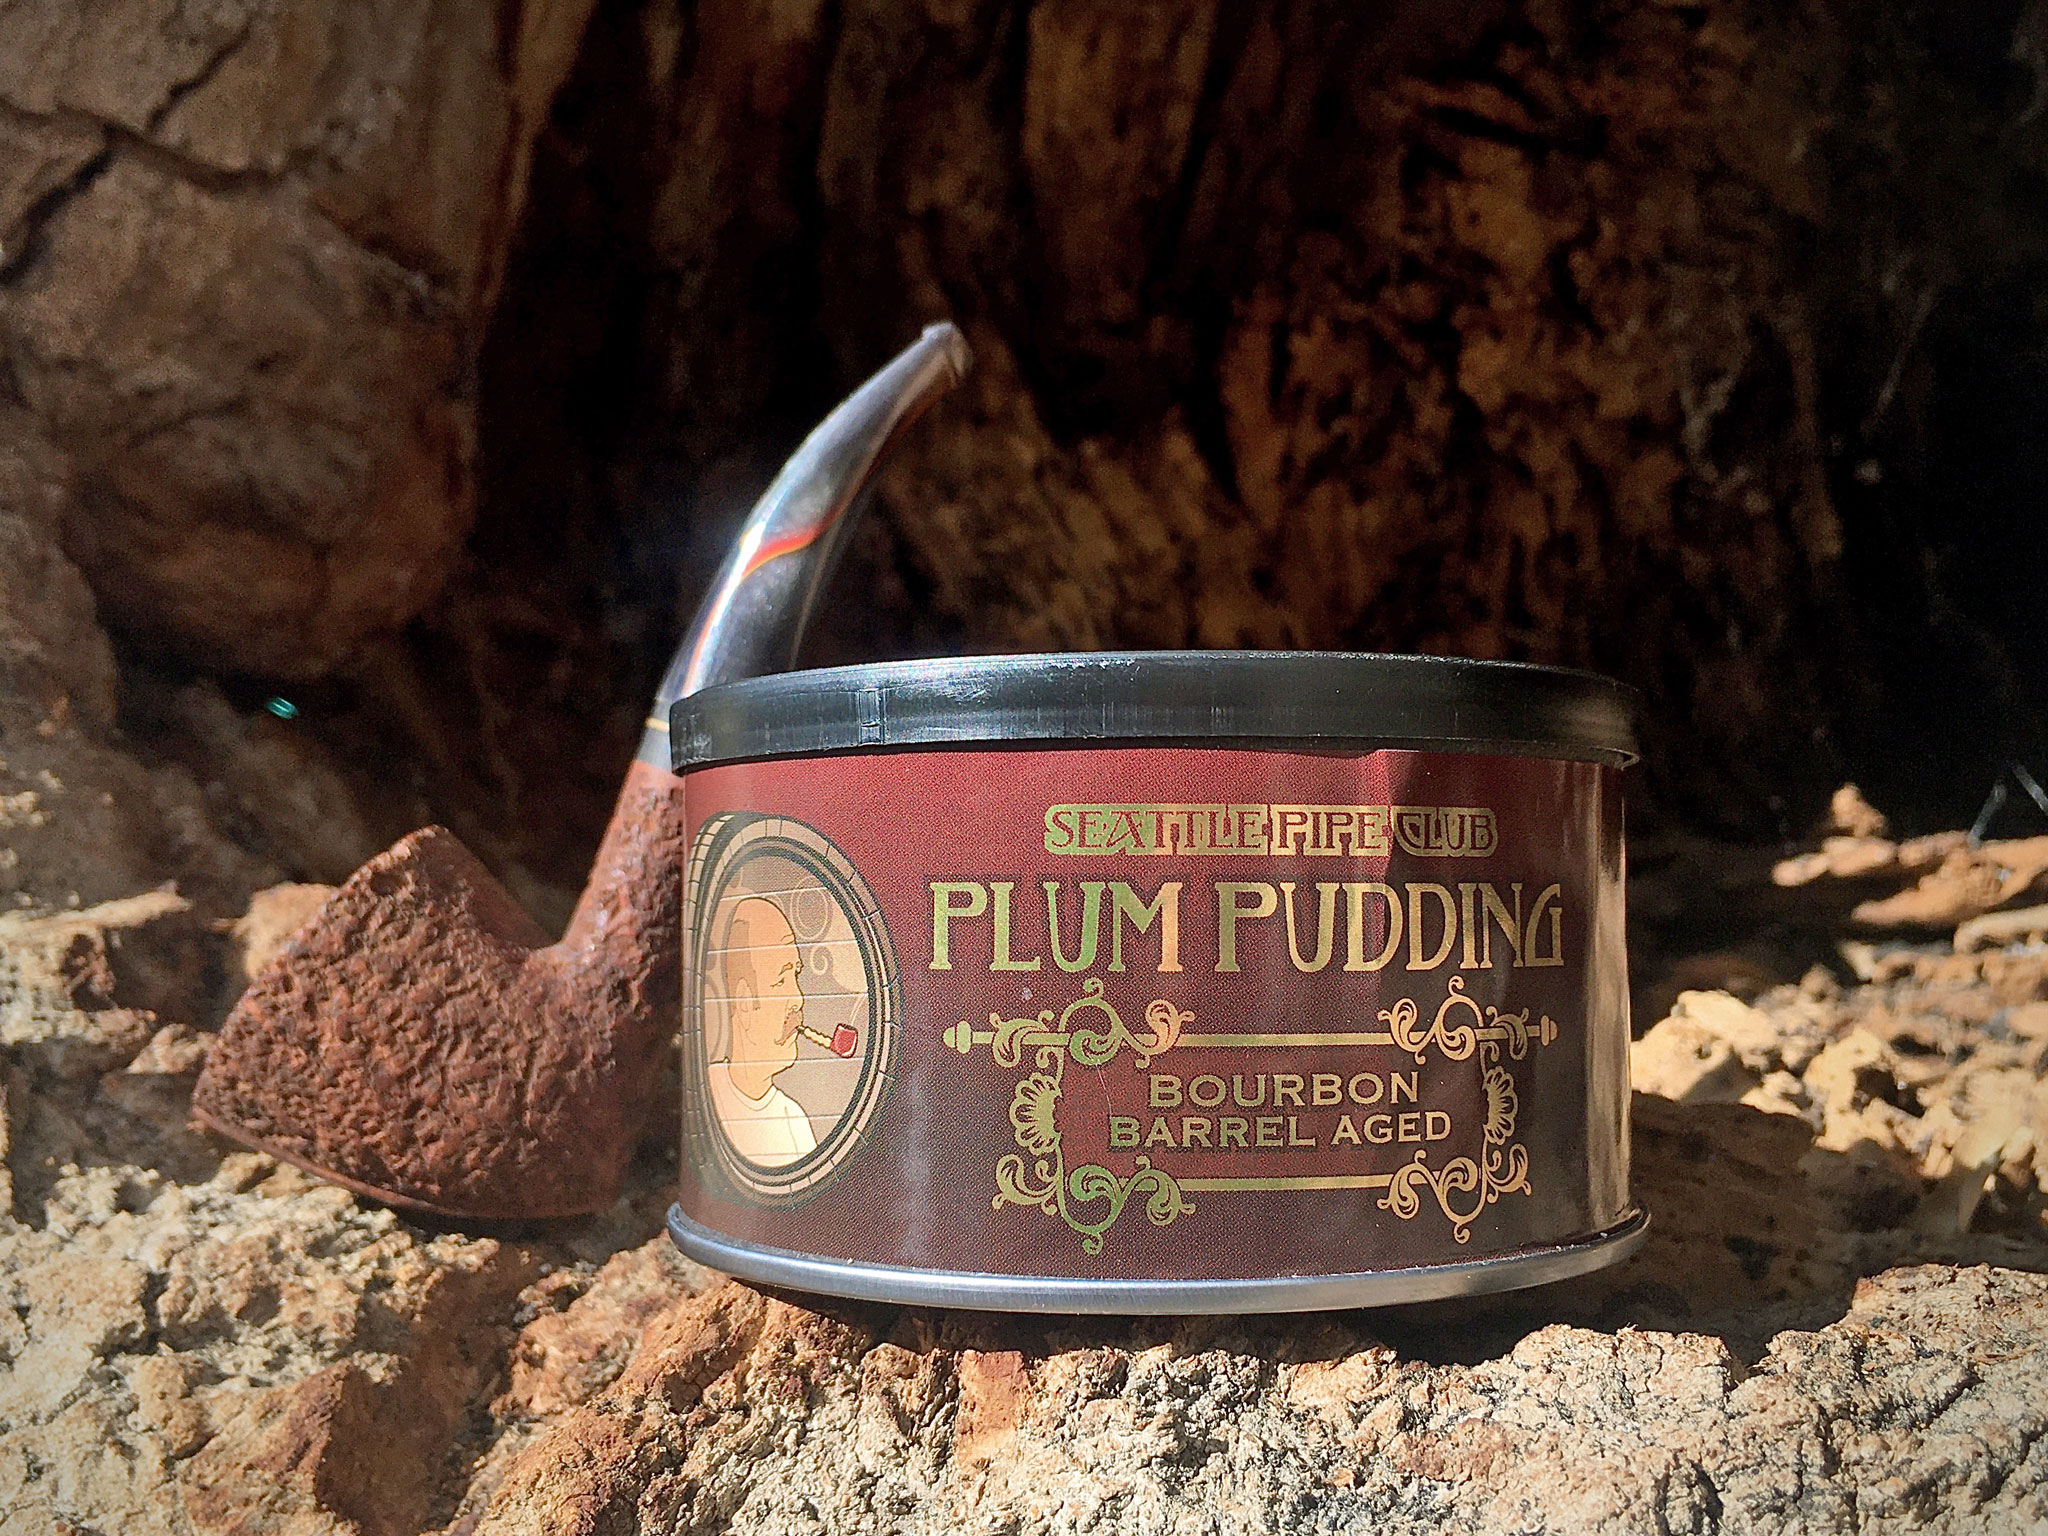 Seattle Pipe Club Plum Pudding Bourbon Barrel Aged Pipe Tobacco